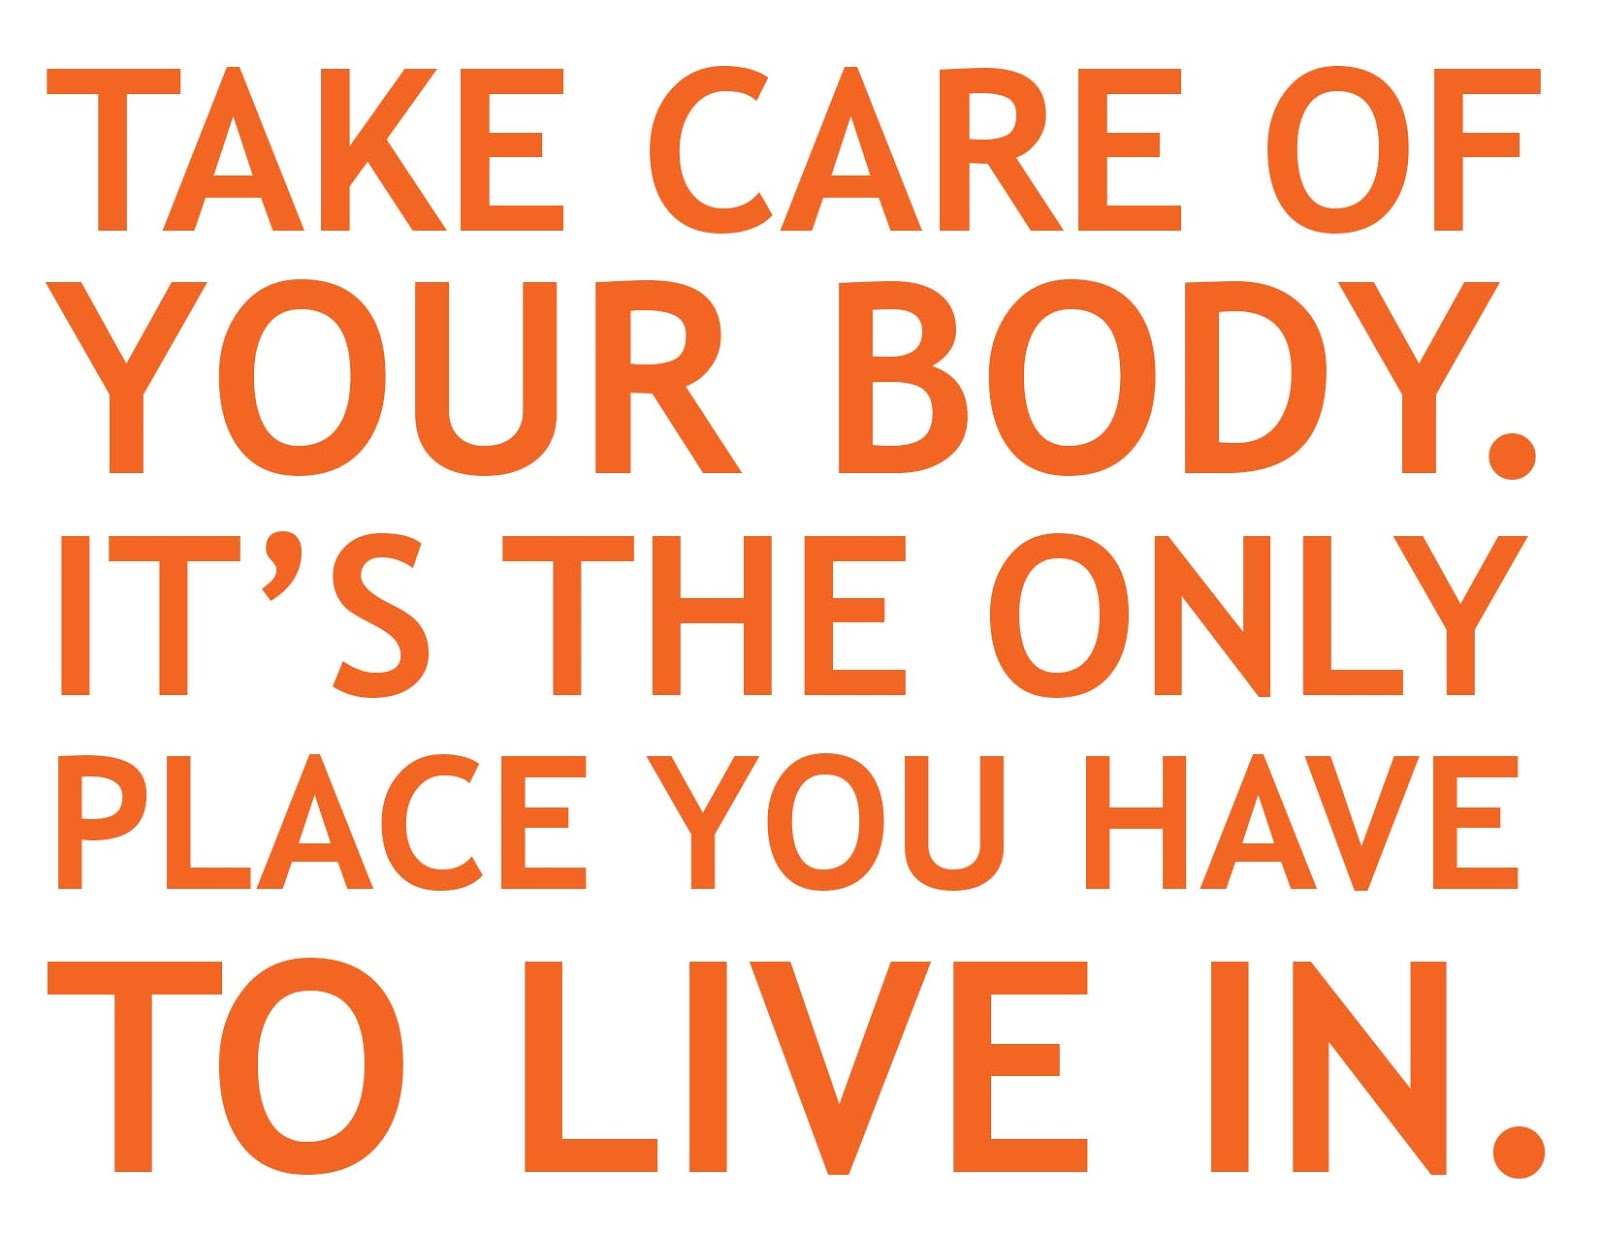 healthy-quote-take care of your body quote fitness quote motivational fitness quote healthy lifestyle quote